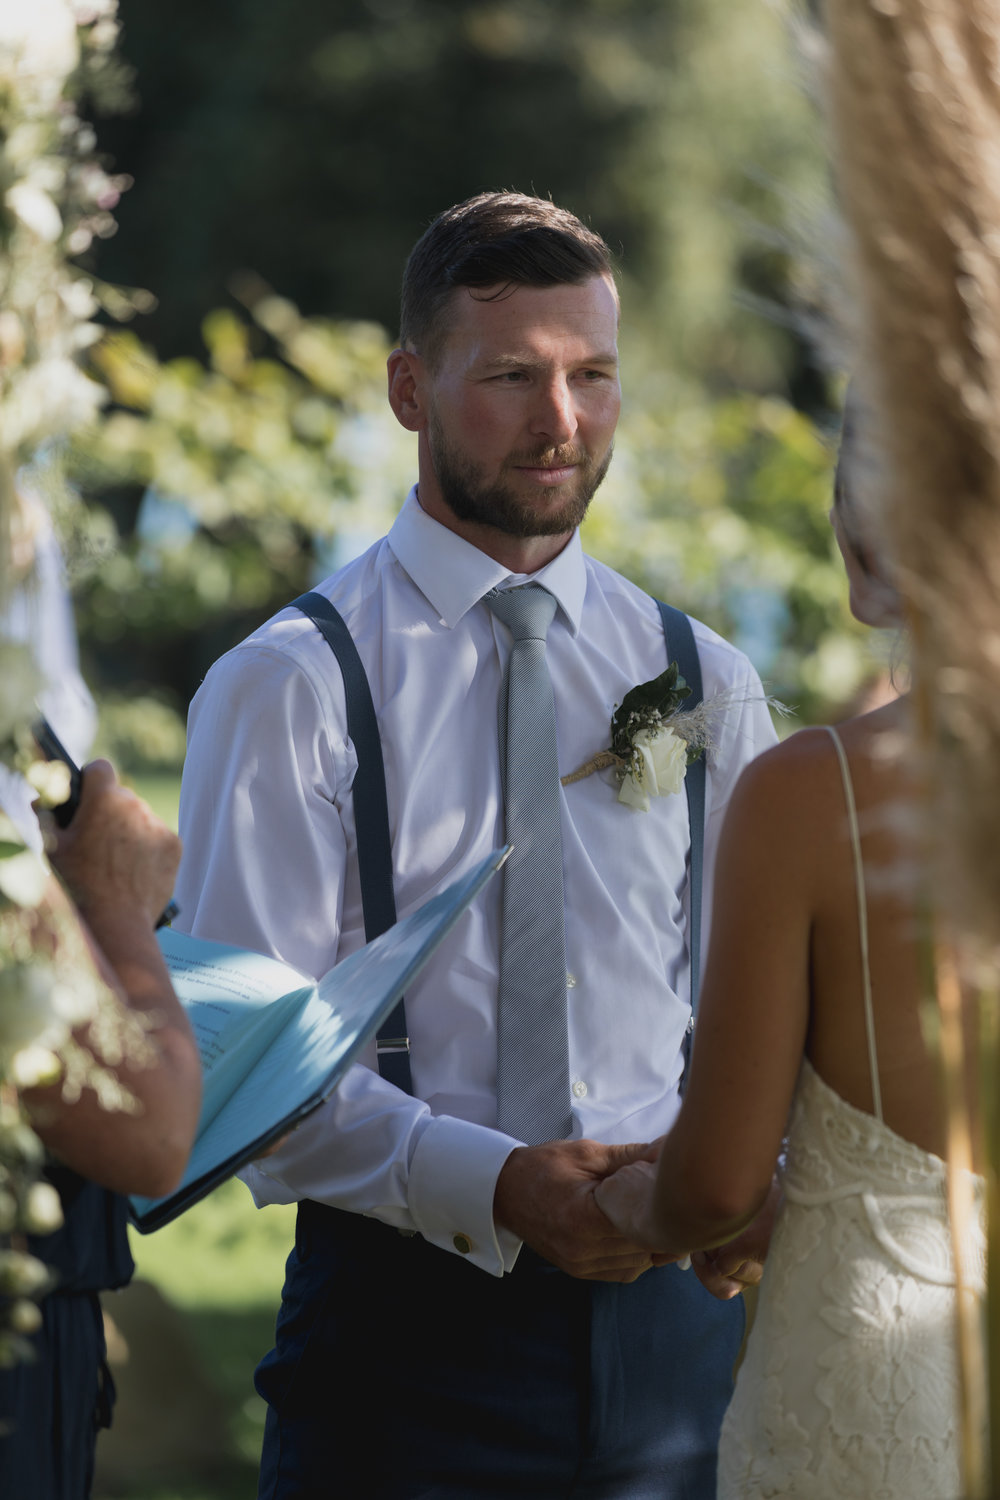 wedding-at-the-red-barn-new-zealand-wedding-photographer-groom-during-ceremony.jpg